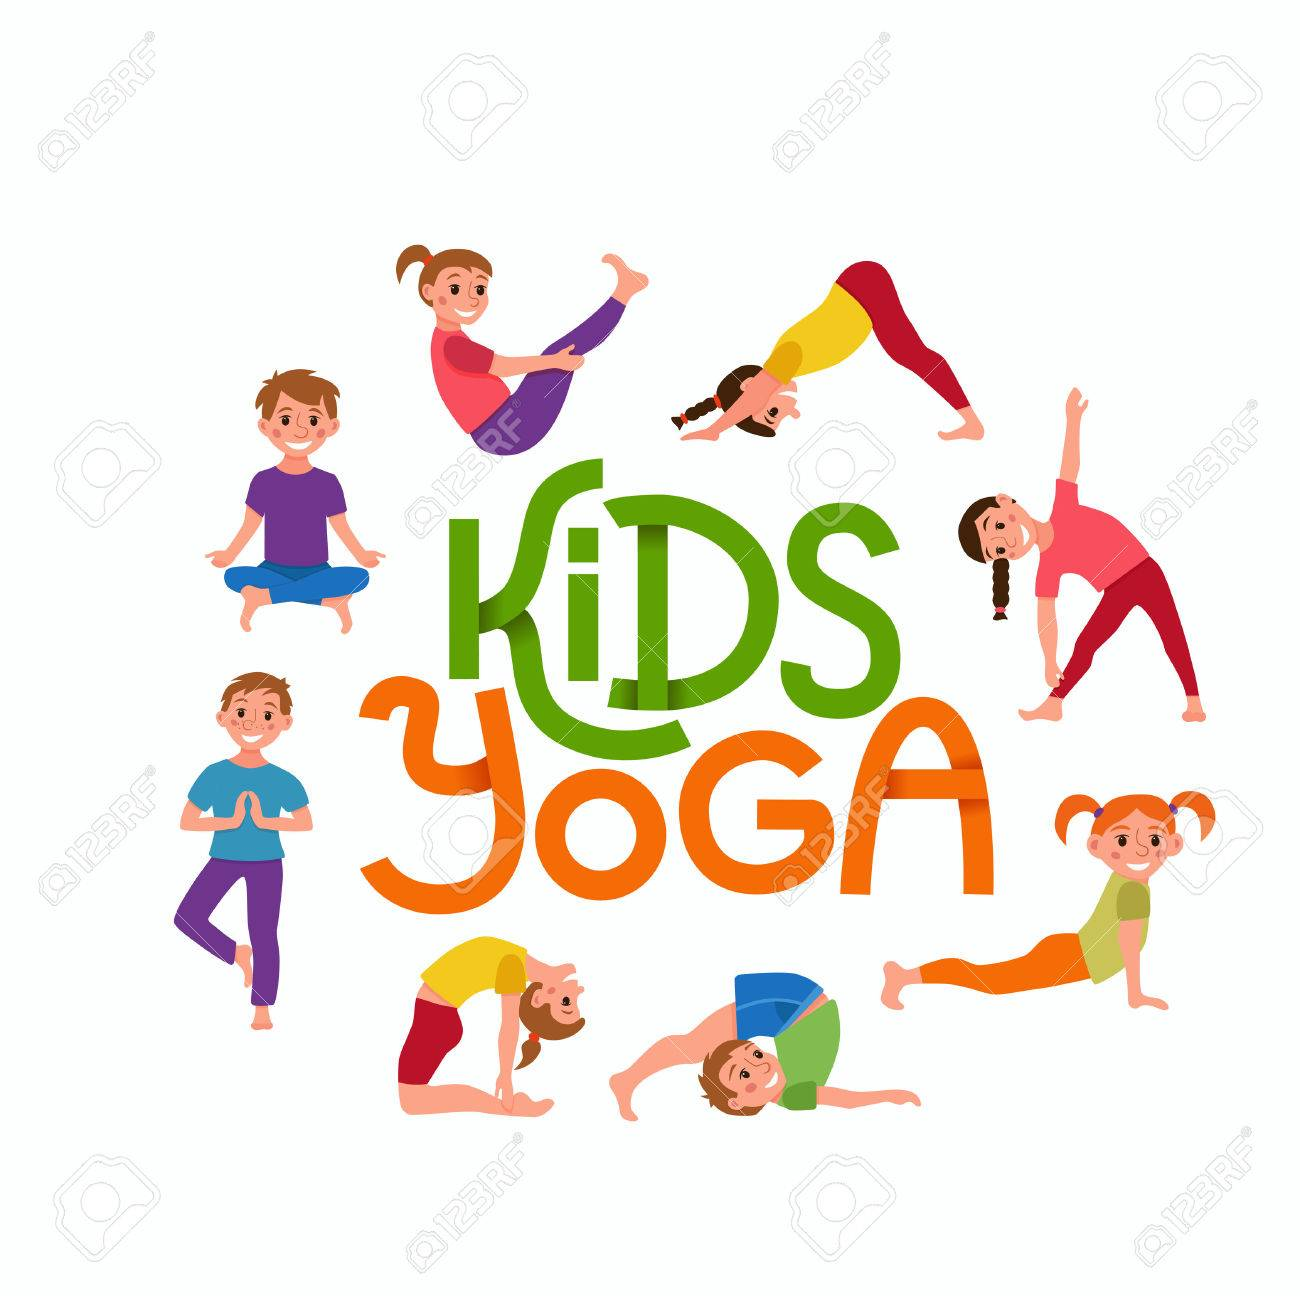 Yoga Kids Poses Set Cute Cartoon Gymnastics For Children And Royalty Free Cliparts Vectors And Stock Illustration Image 70793790